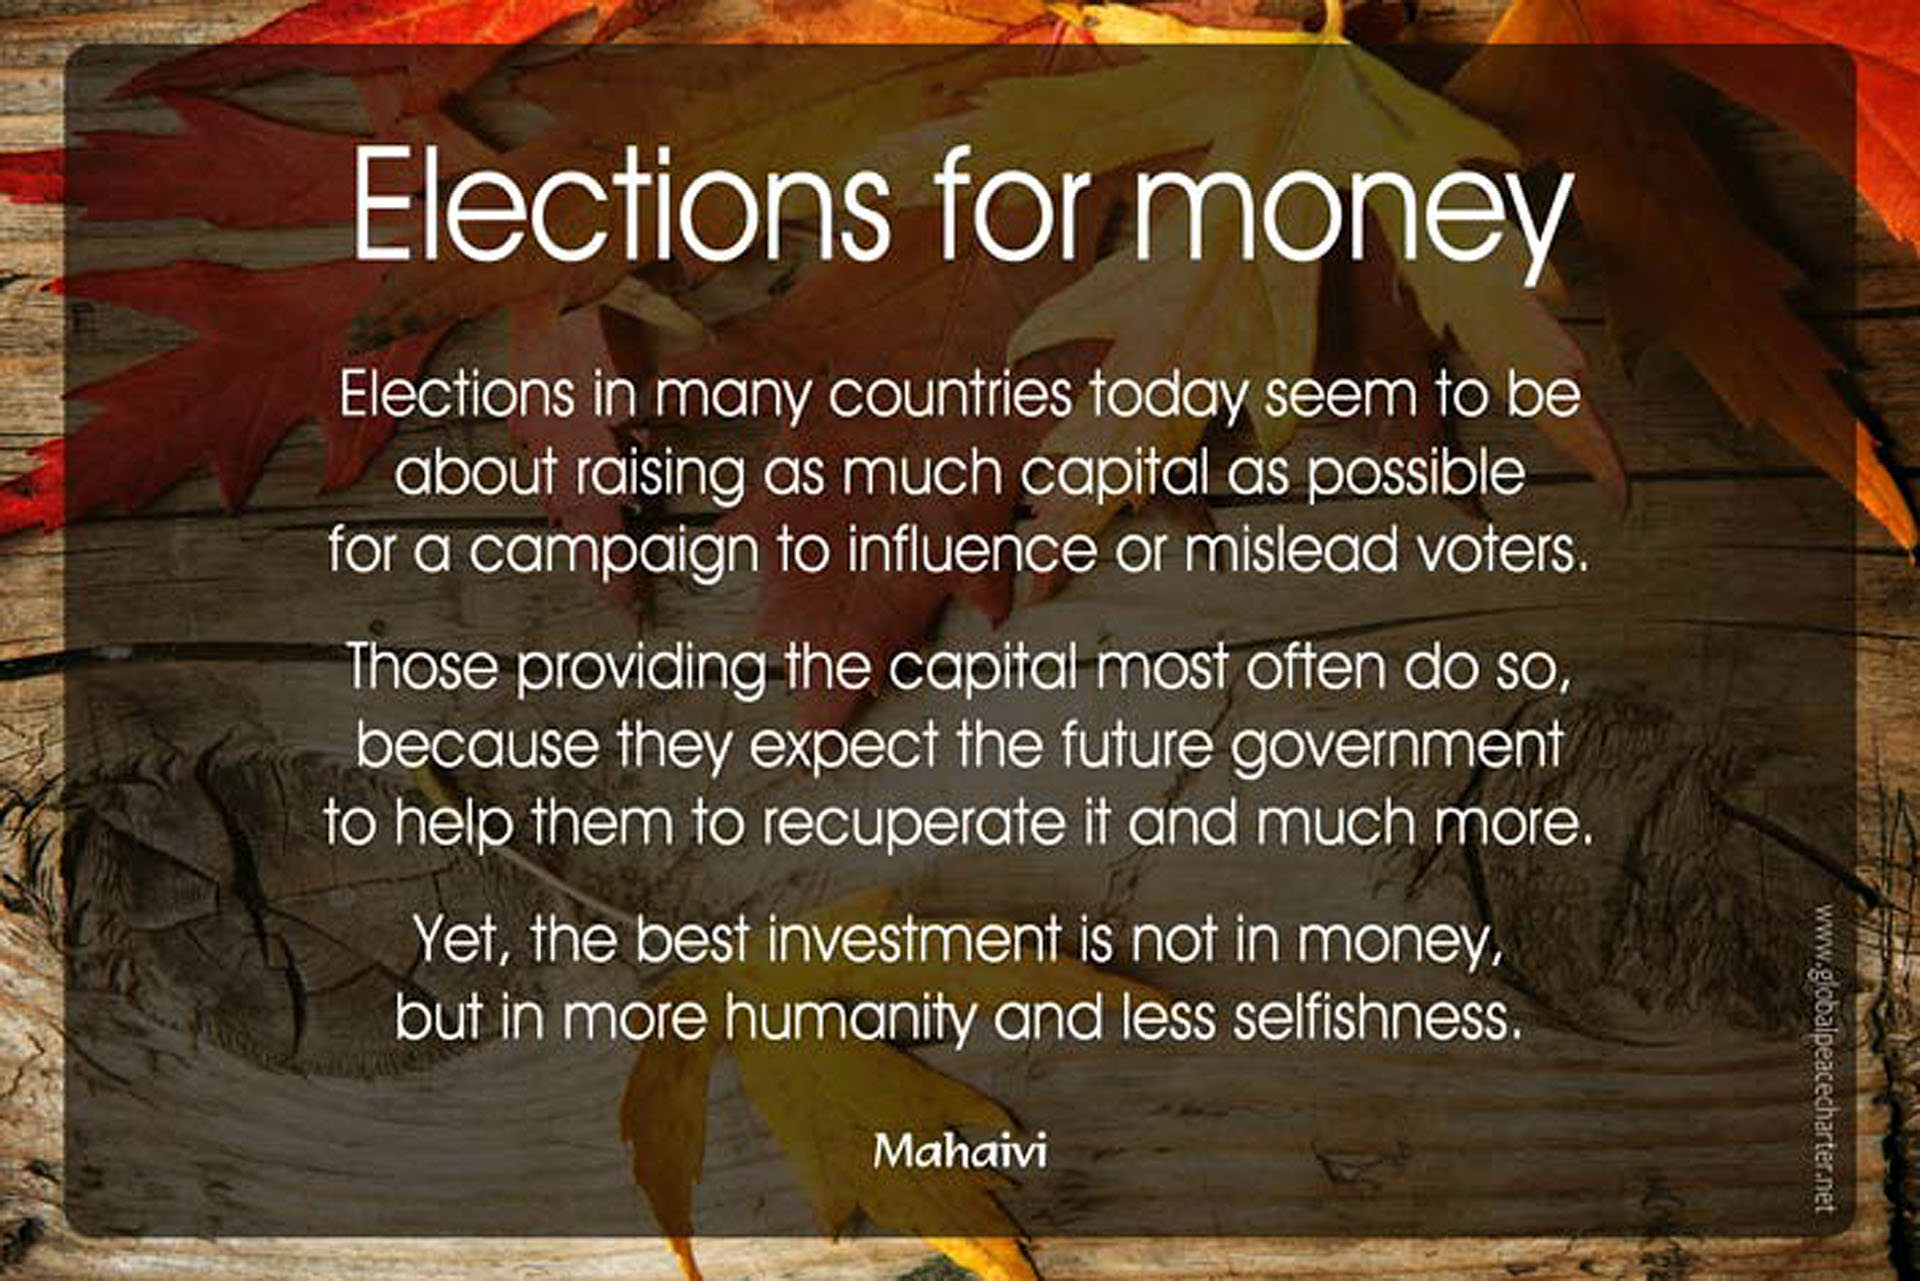 Elections for money